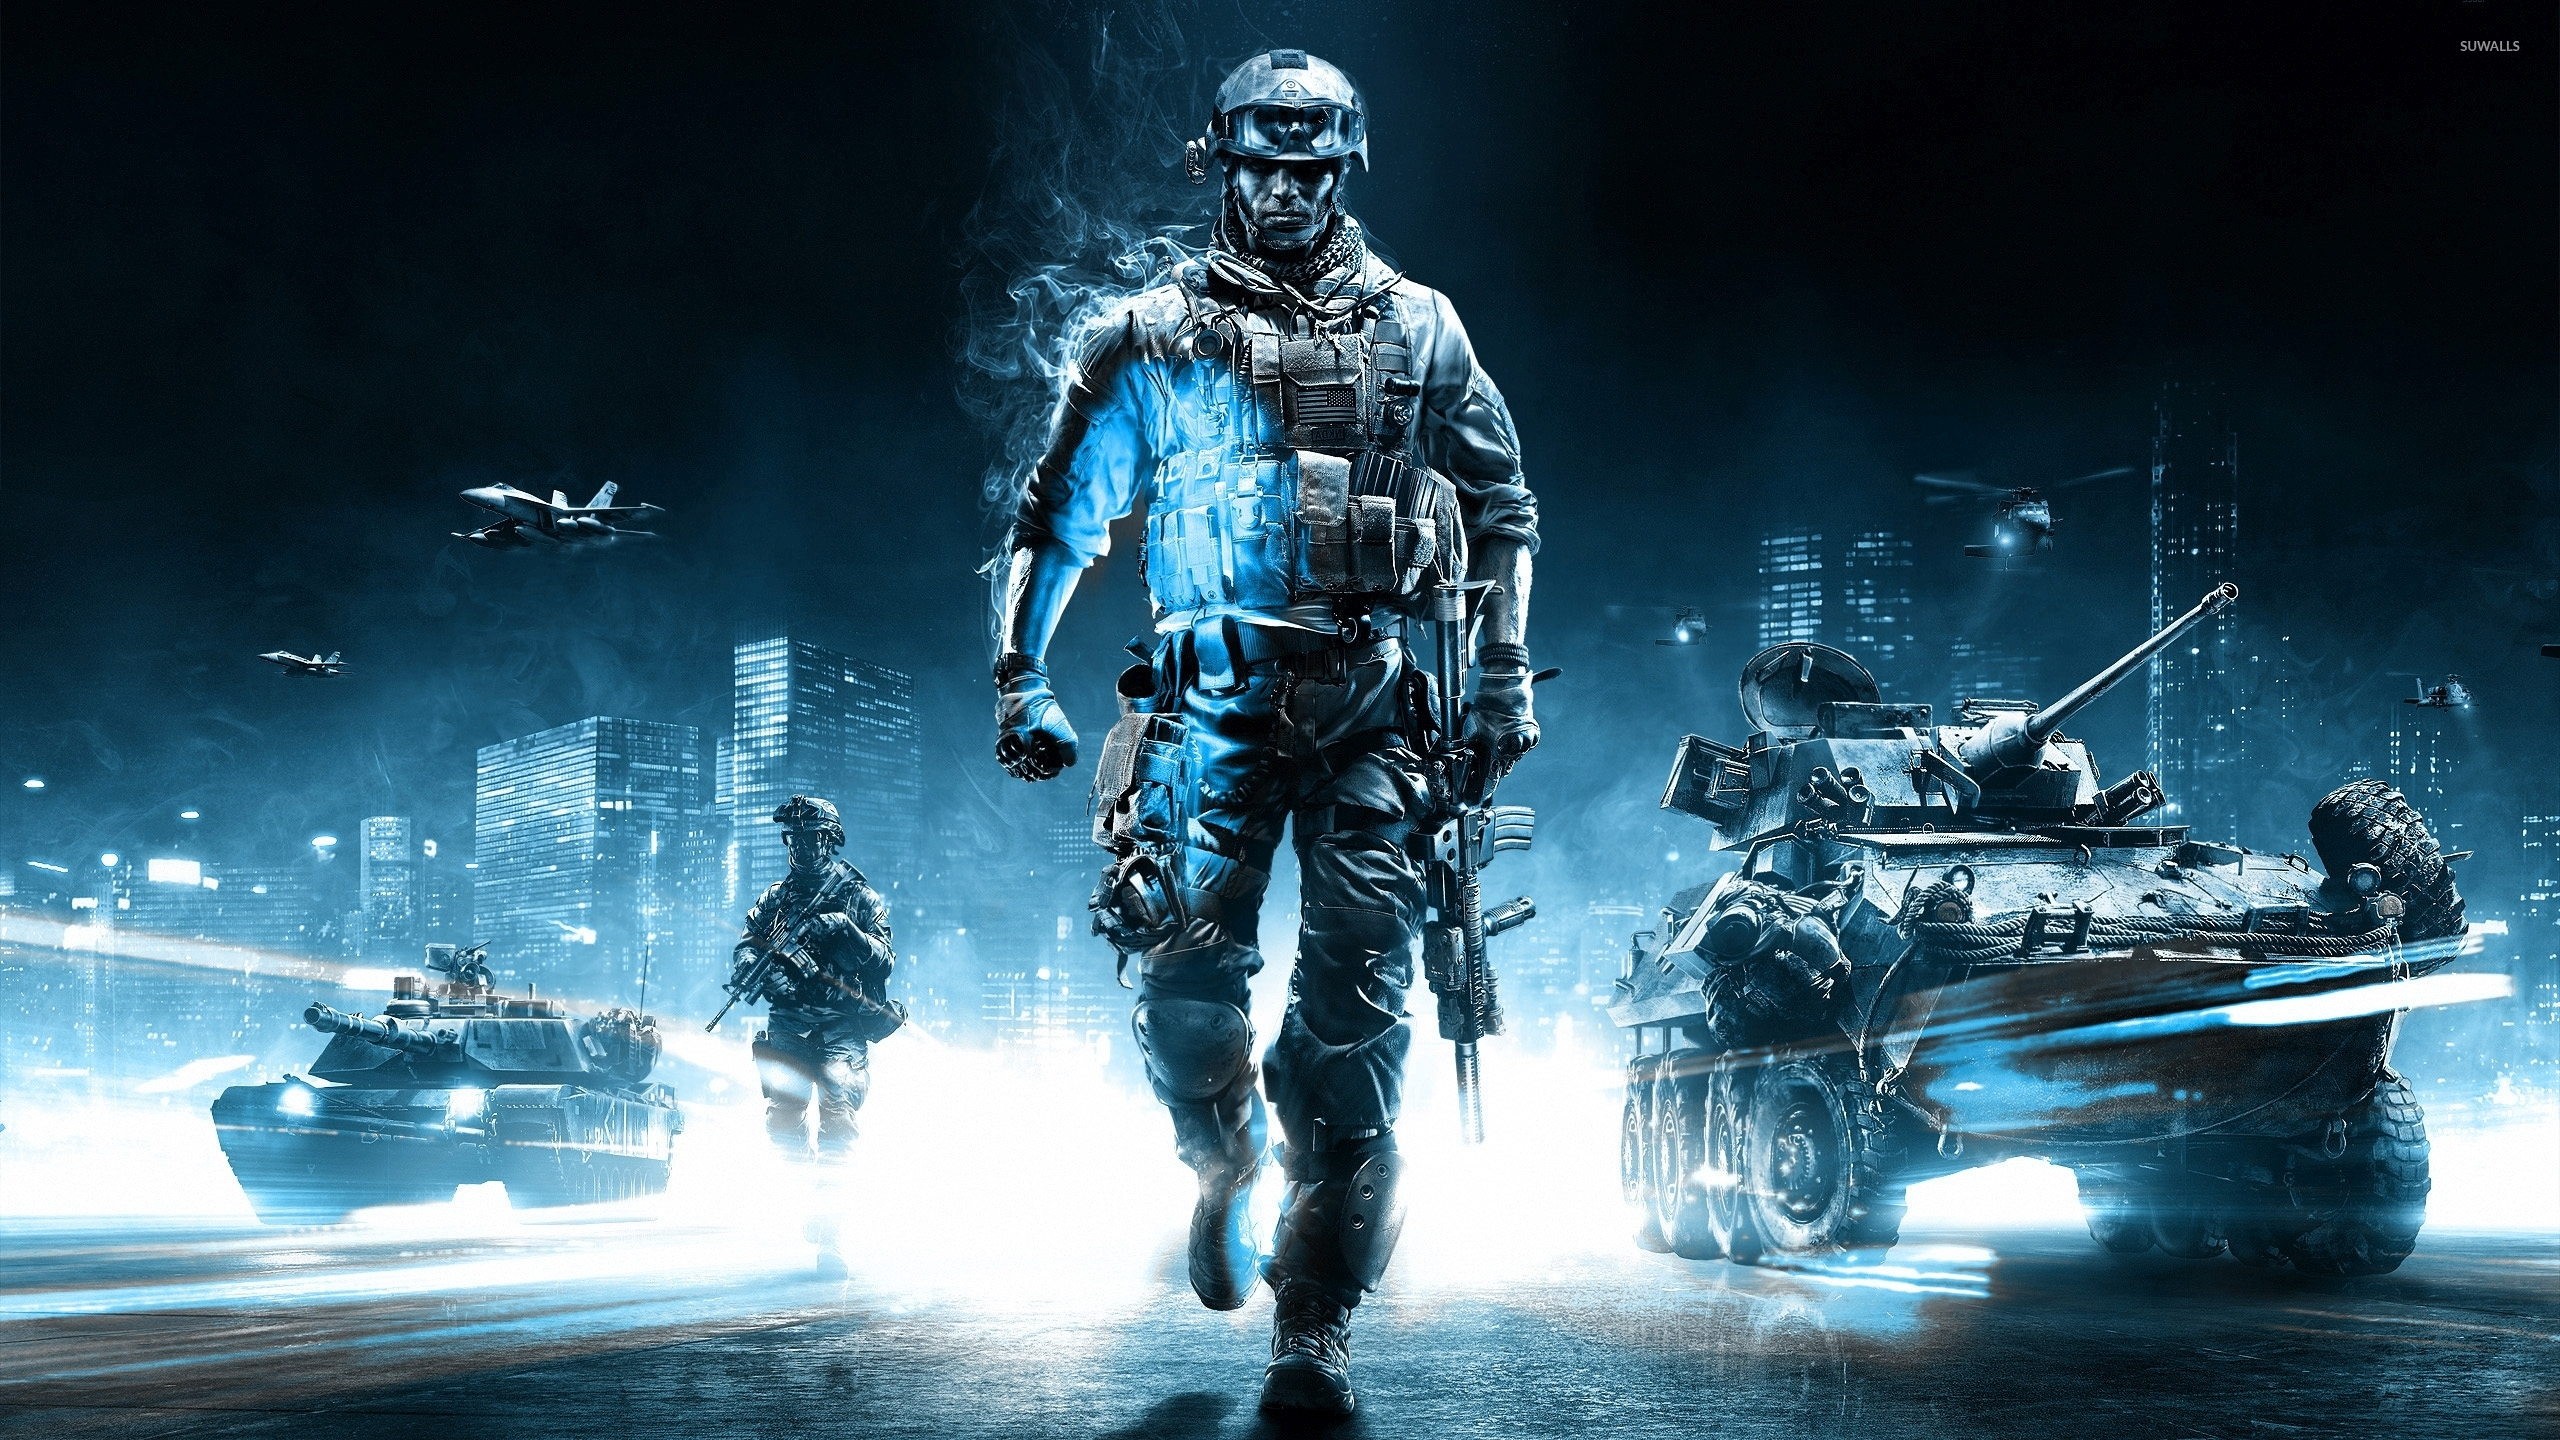 46 battlefield 4 wallpaper 2560x1440 on wallpapersafari - Battlefield screensaver ...